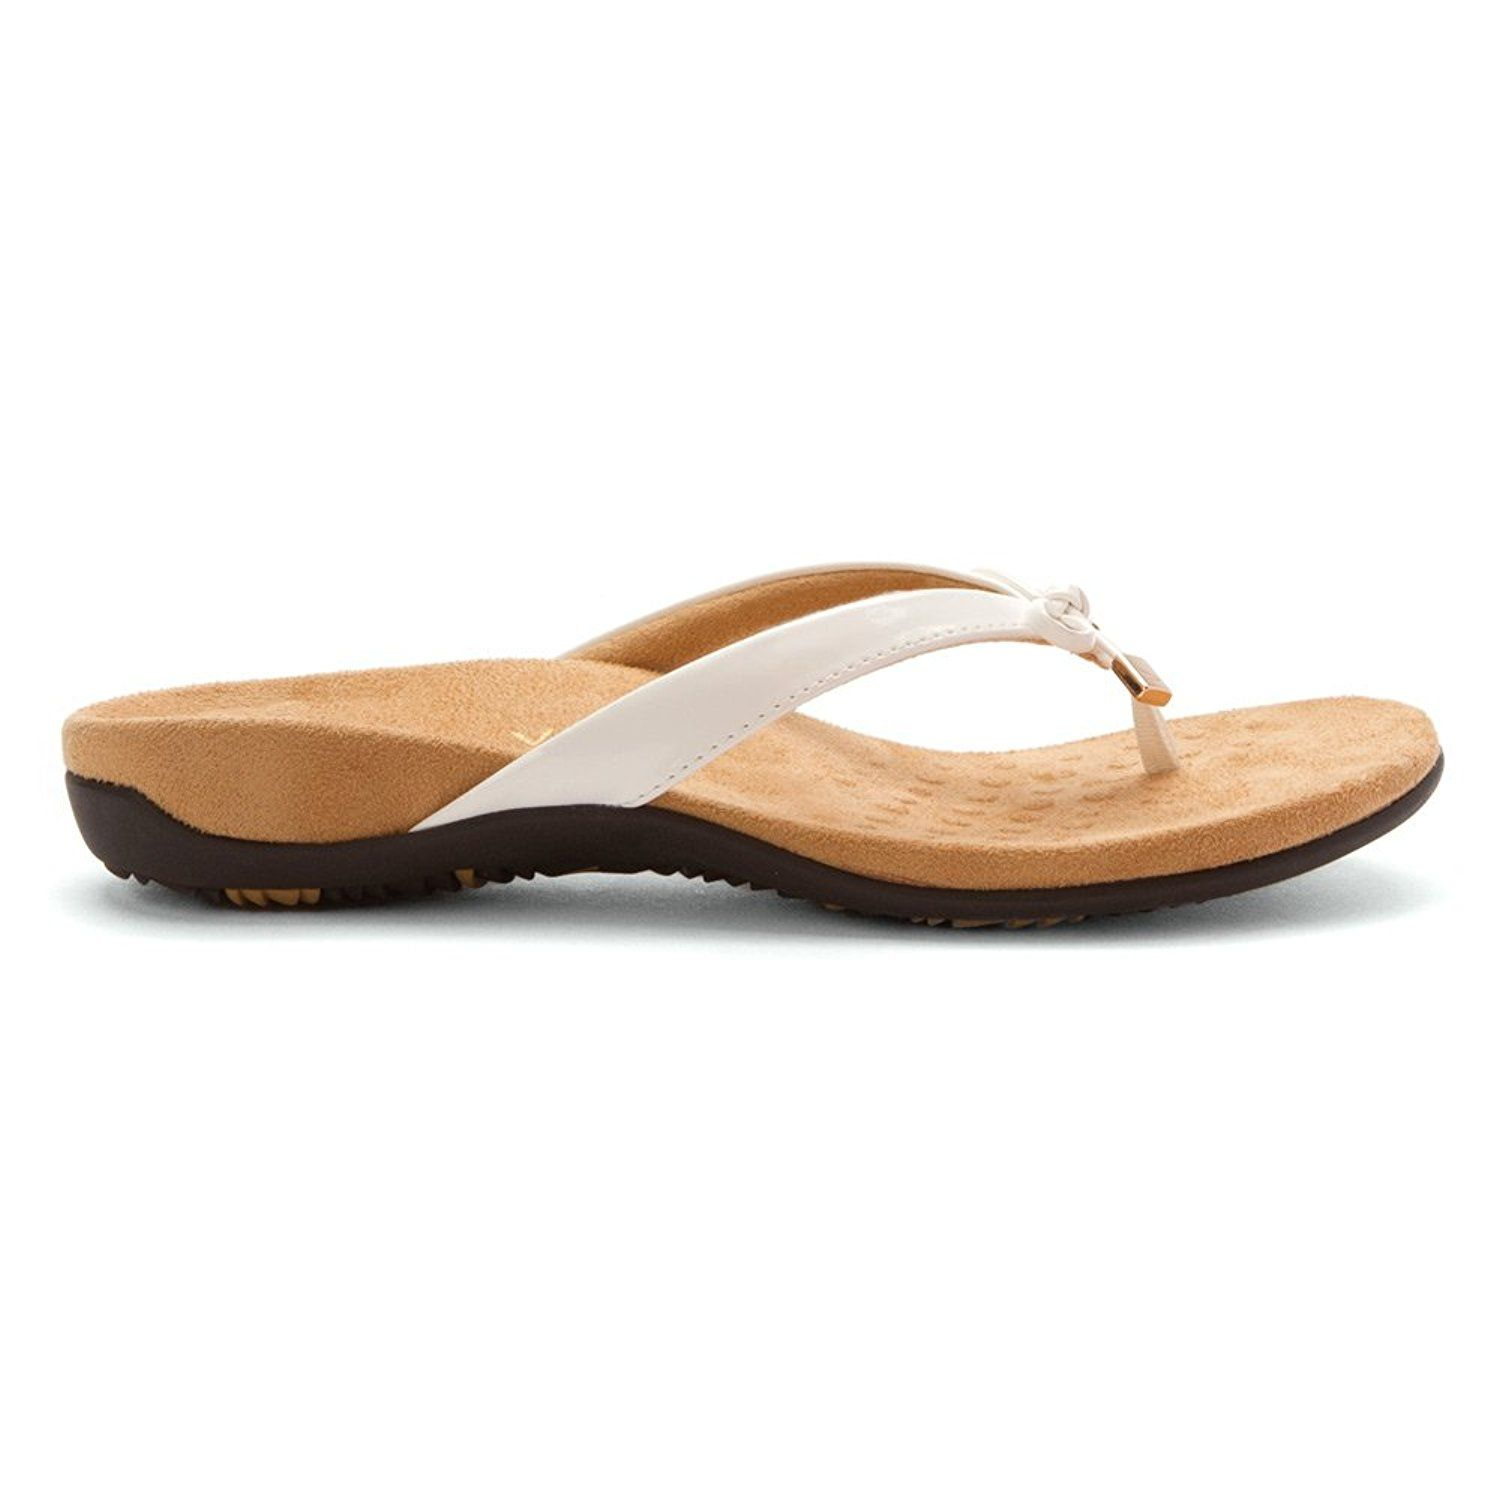 6fd8ccd0f17 Vionic Womens Bella II Sandal White Size 10   Want to know more ...